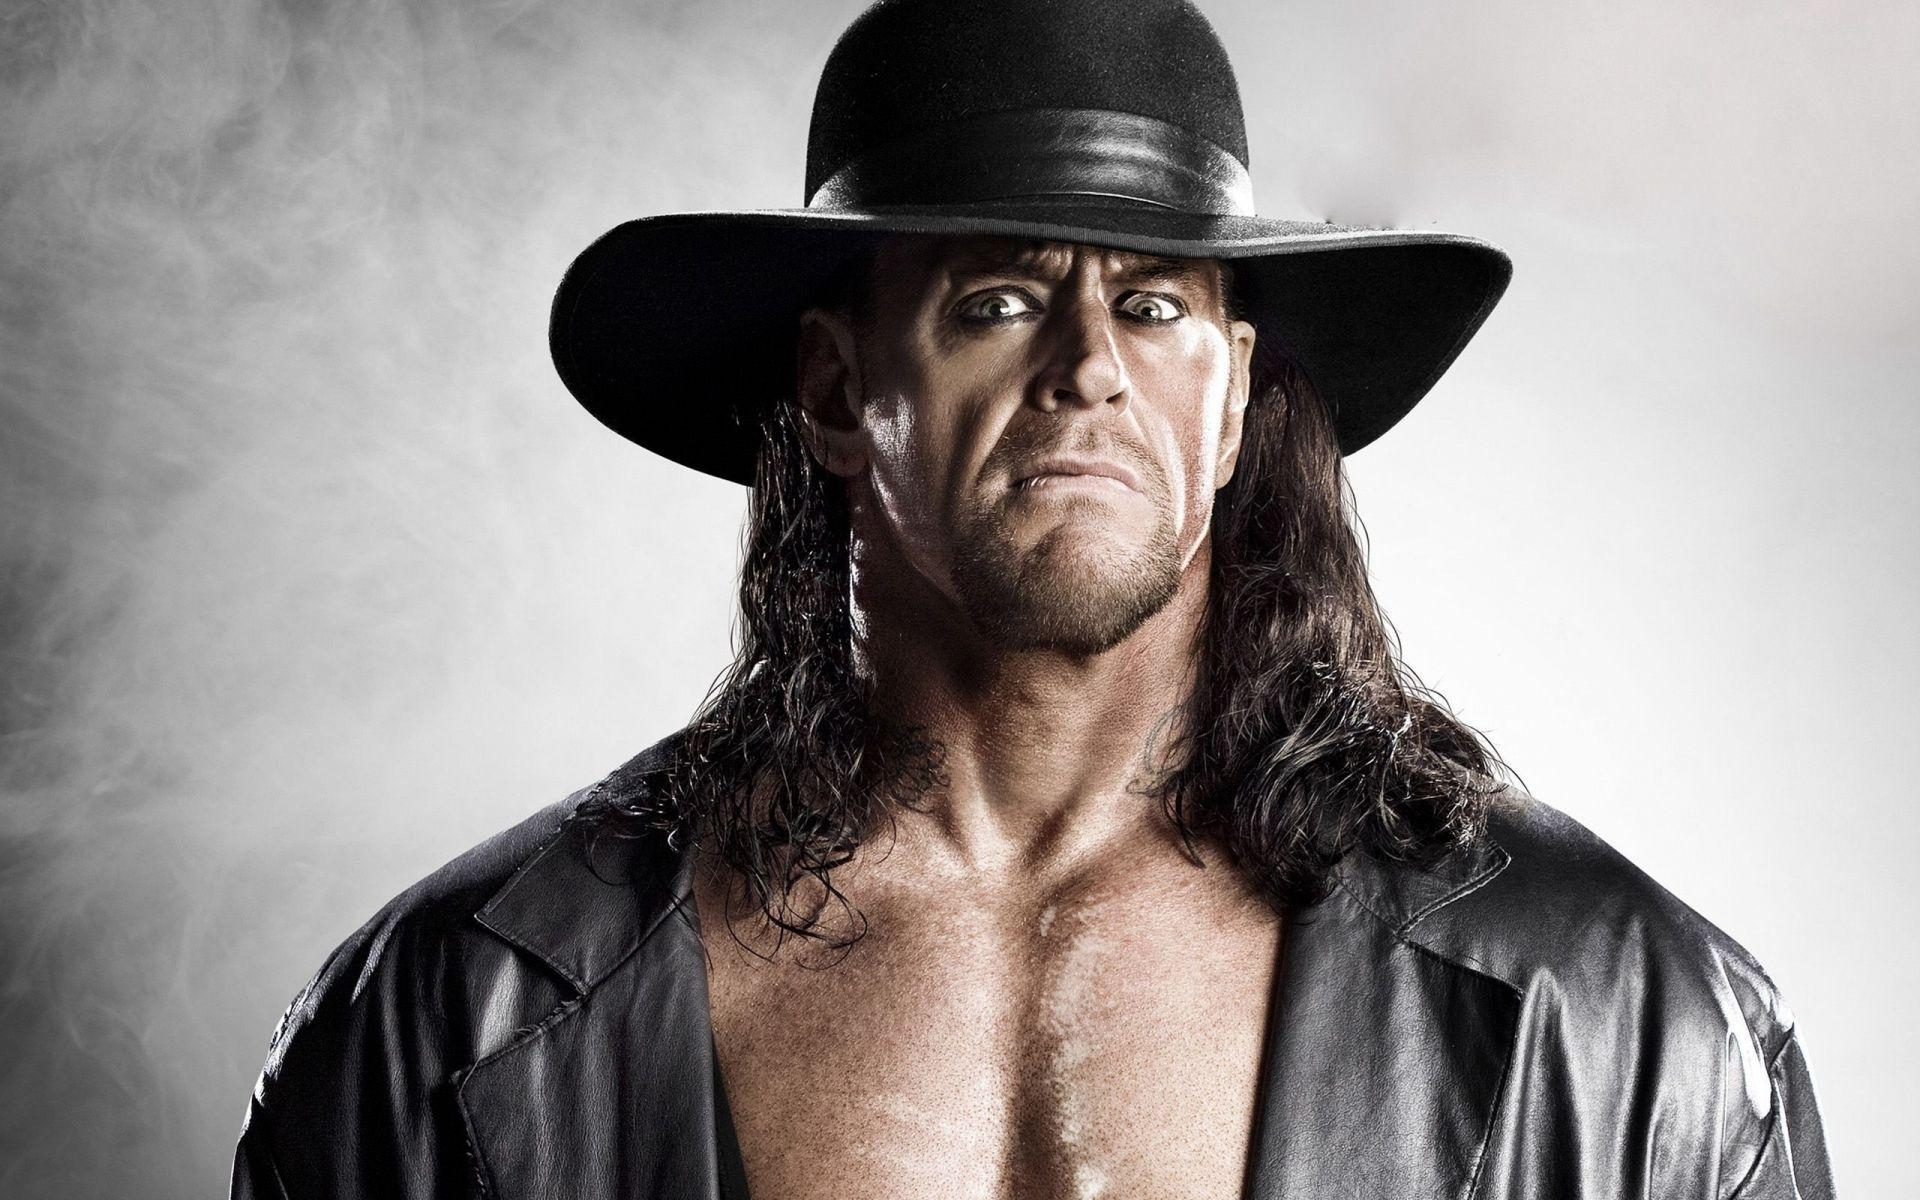 undertaker images download